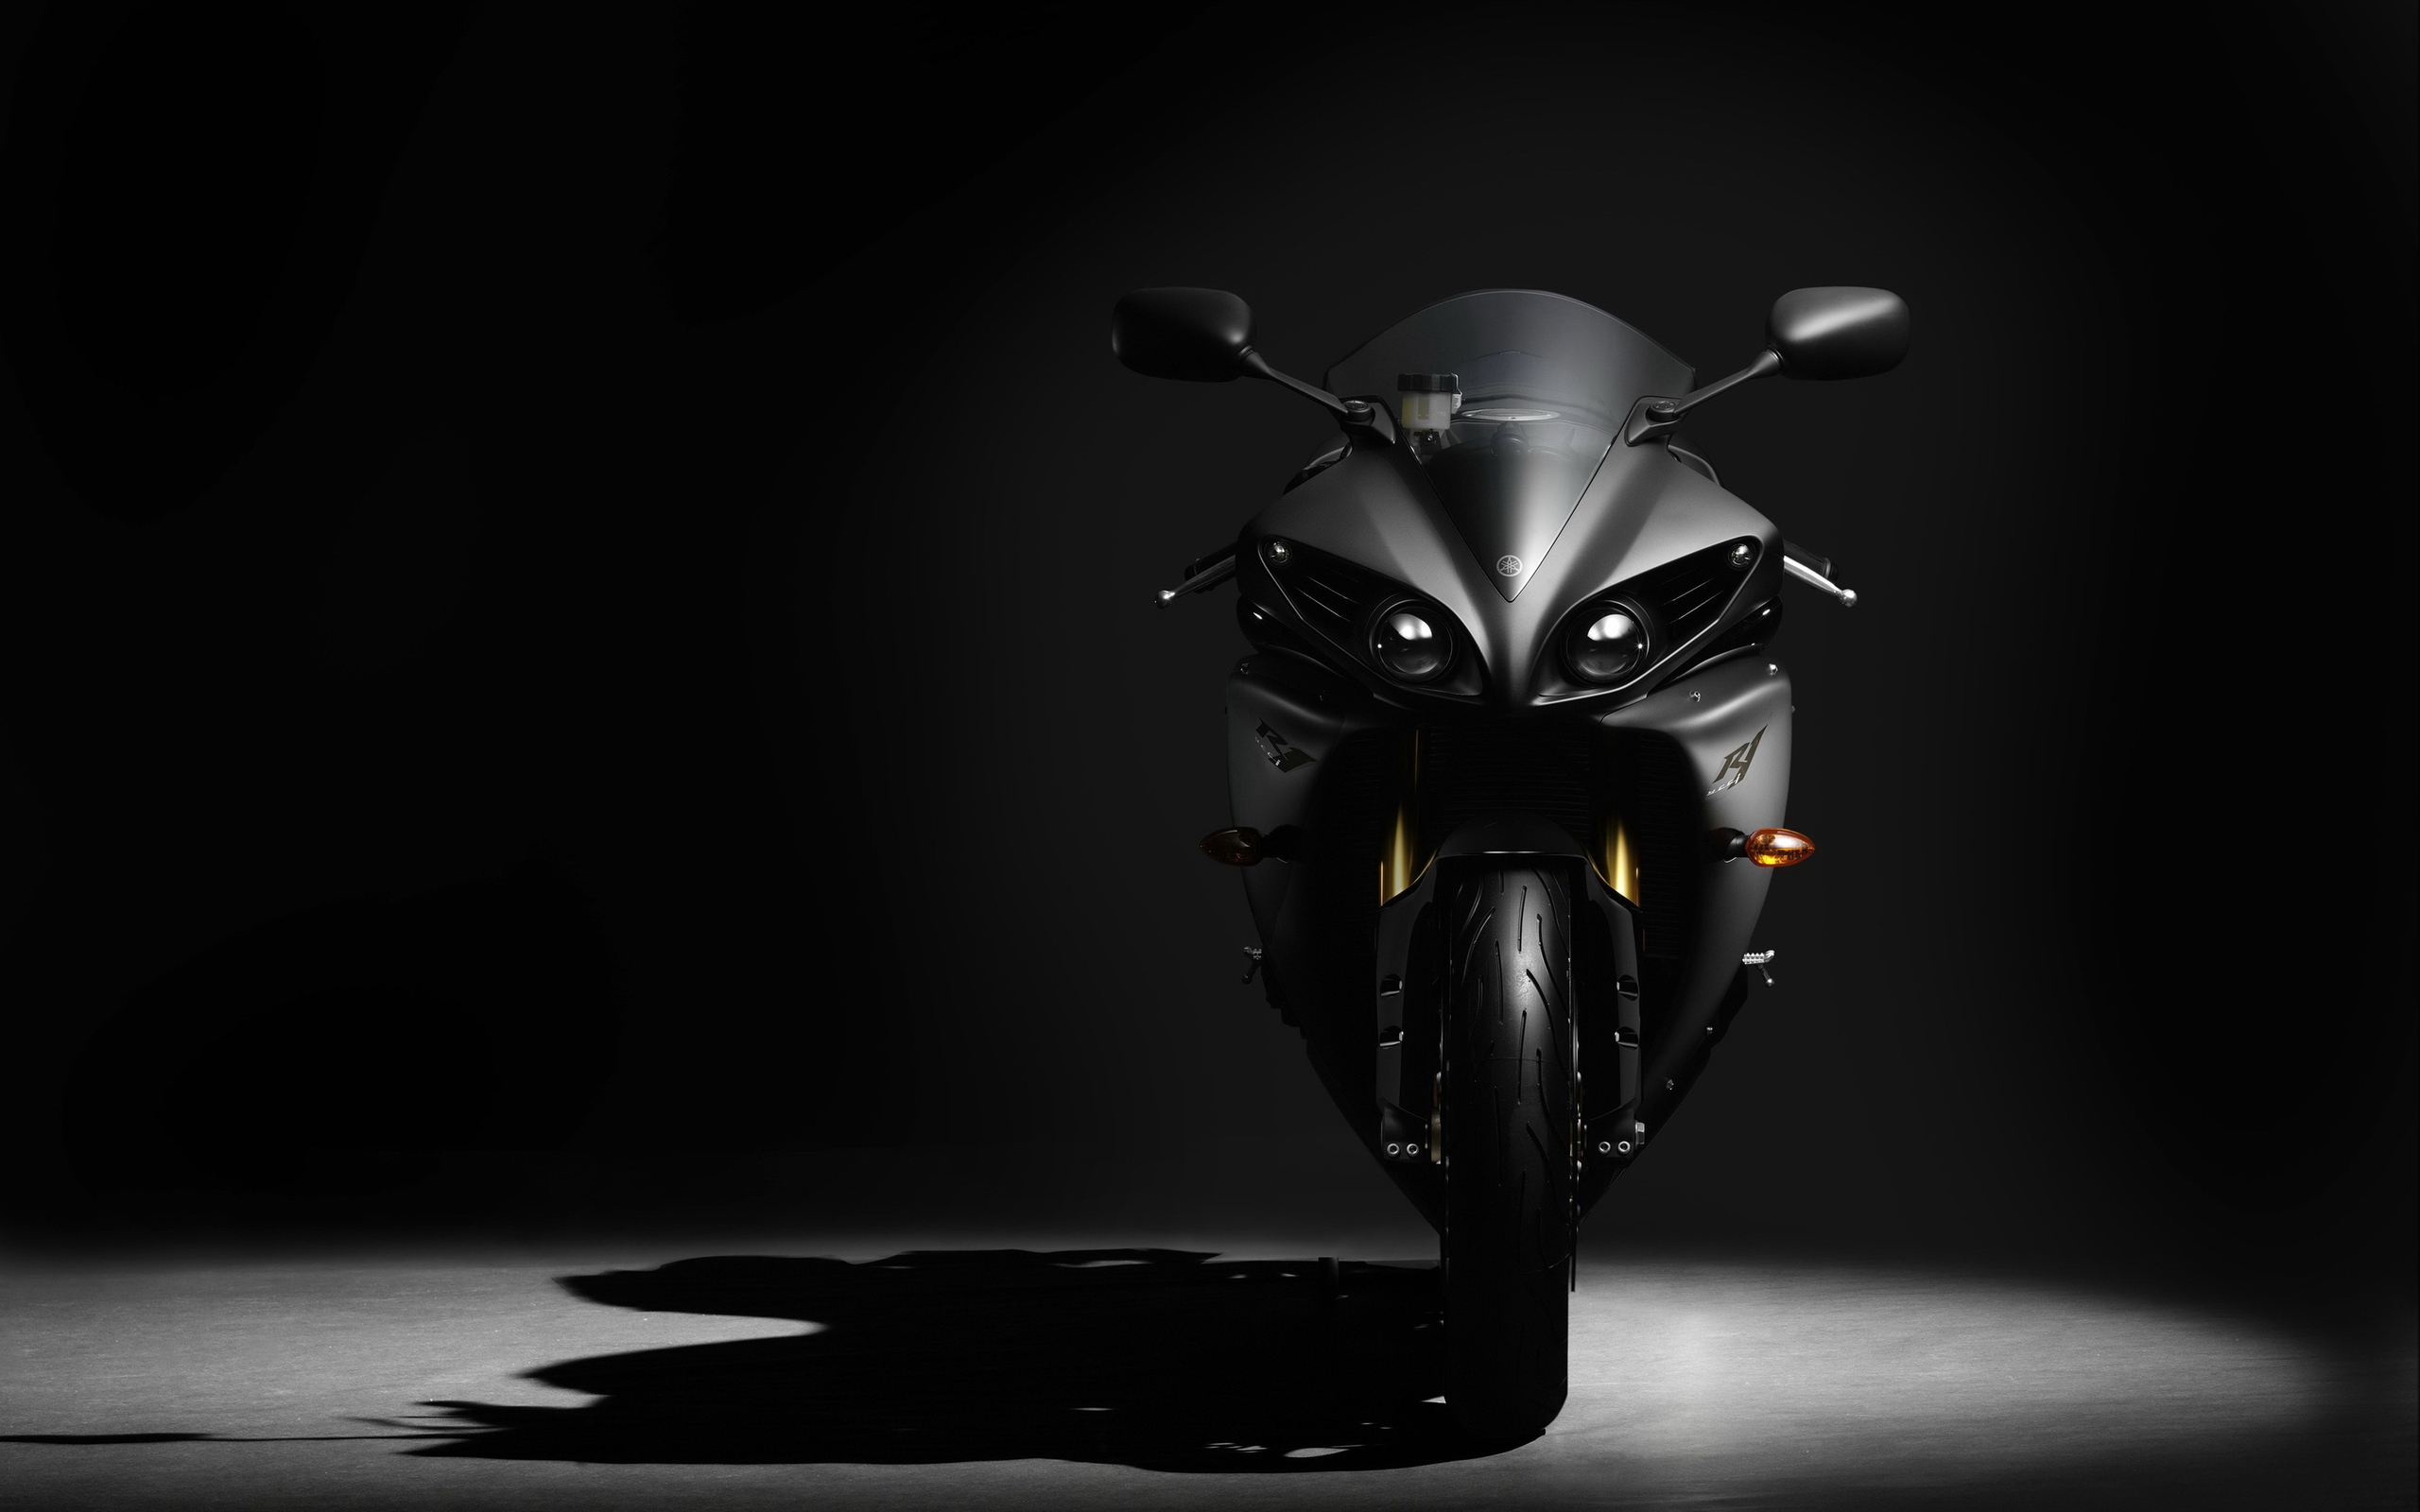 Wallpaper yamaha yzf r1